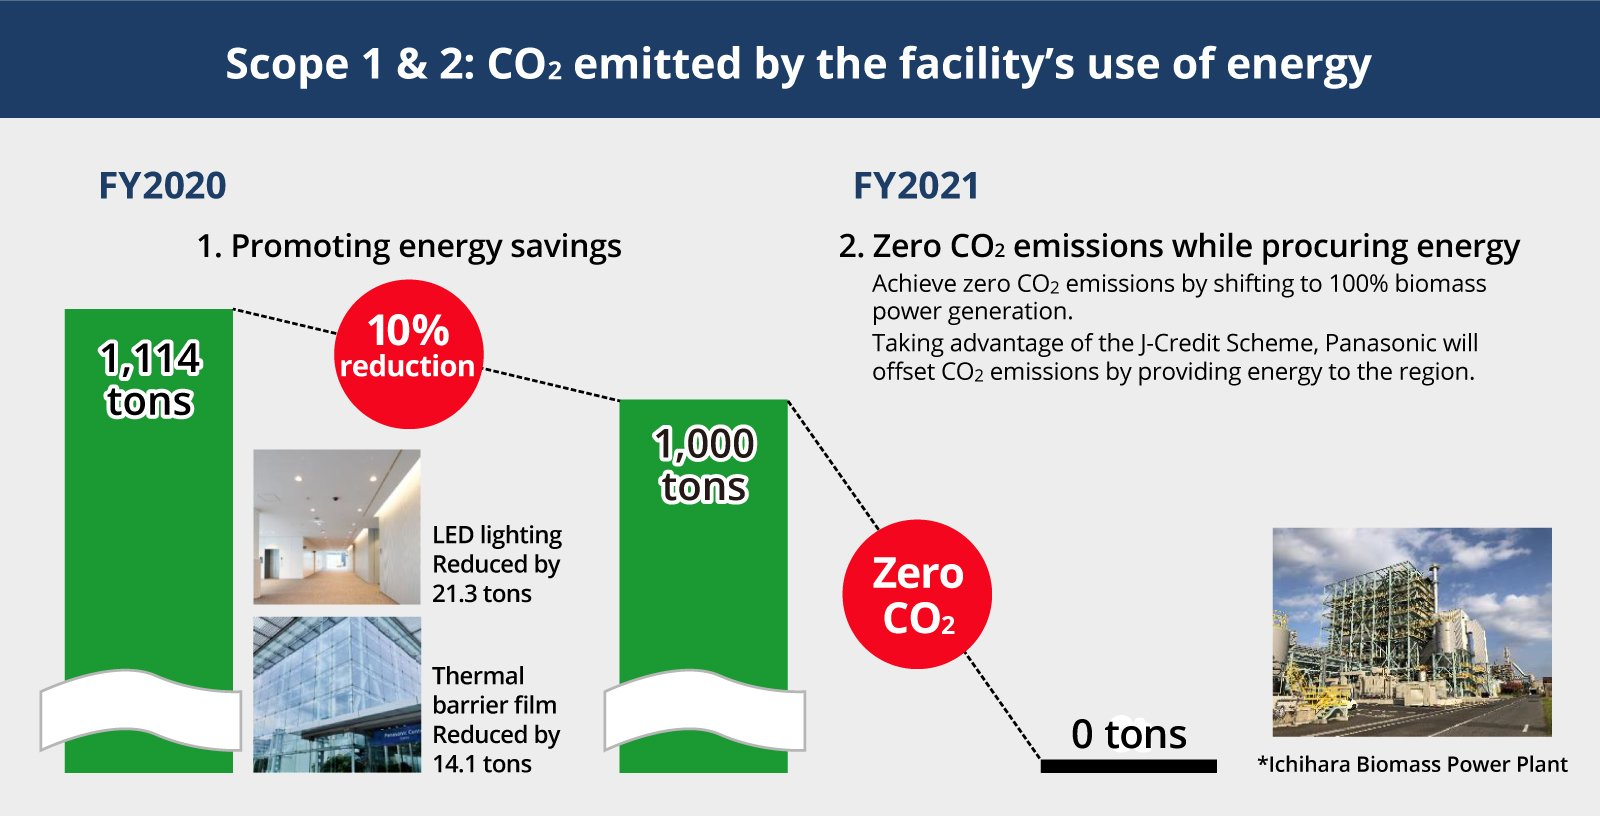 Scope 1 & 2: CO2 emitted by the facility's use of energy